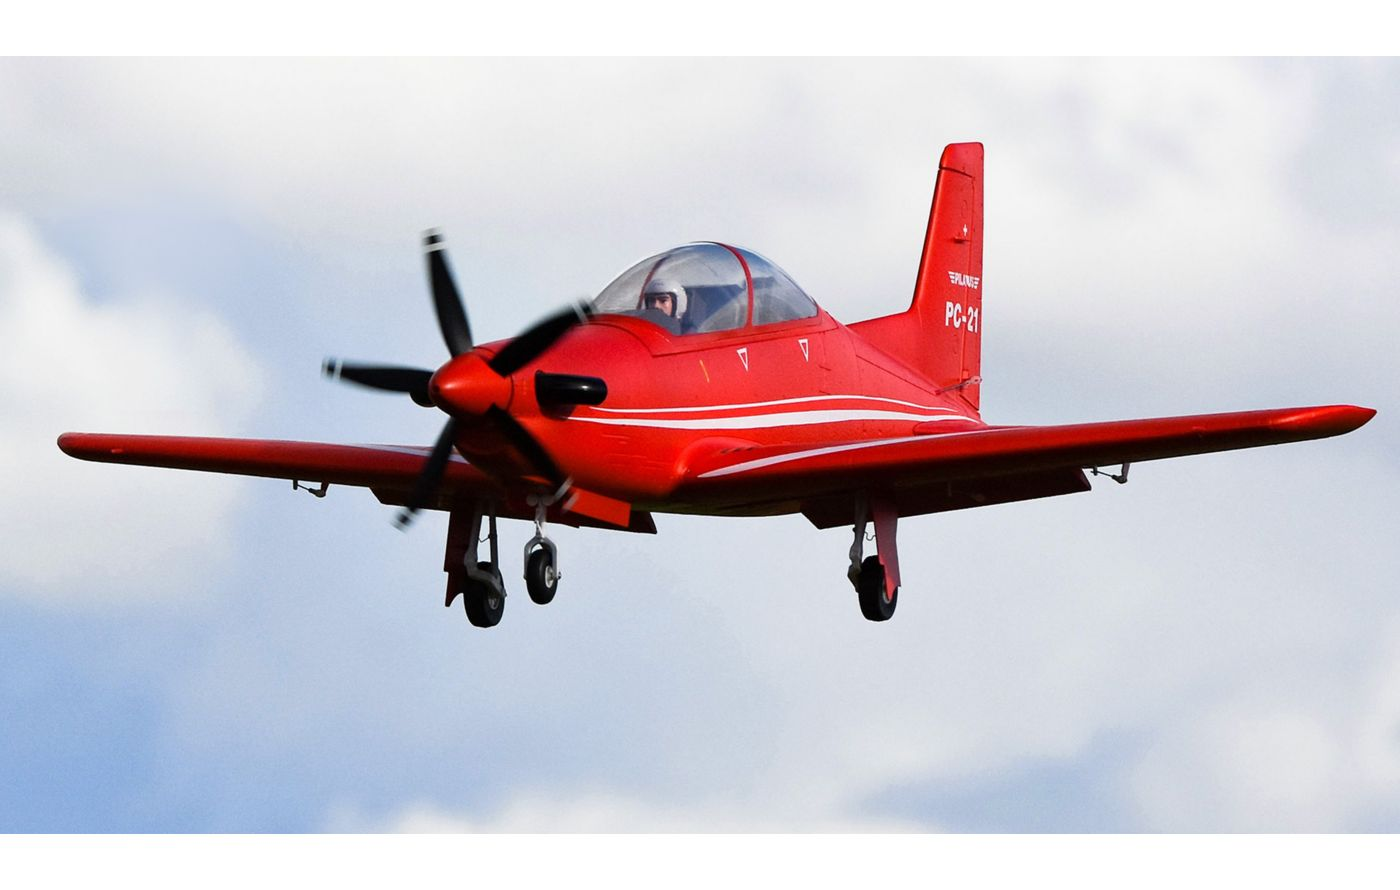 Image for Pilatus PC-21 PNP, 1100mm from Force RC